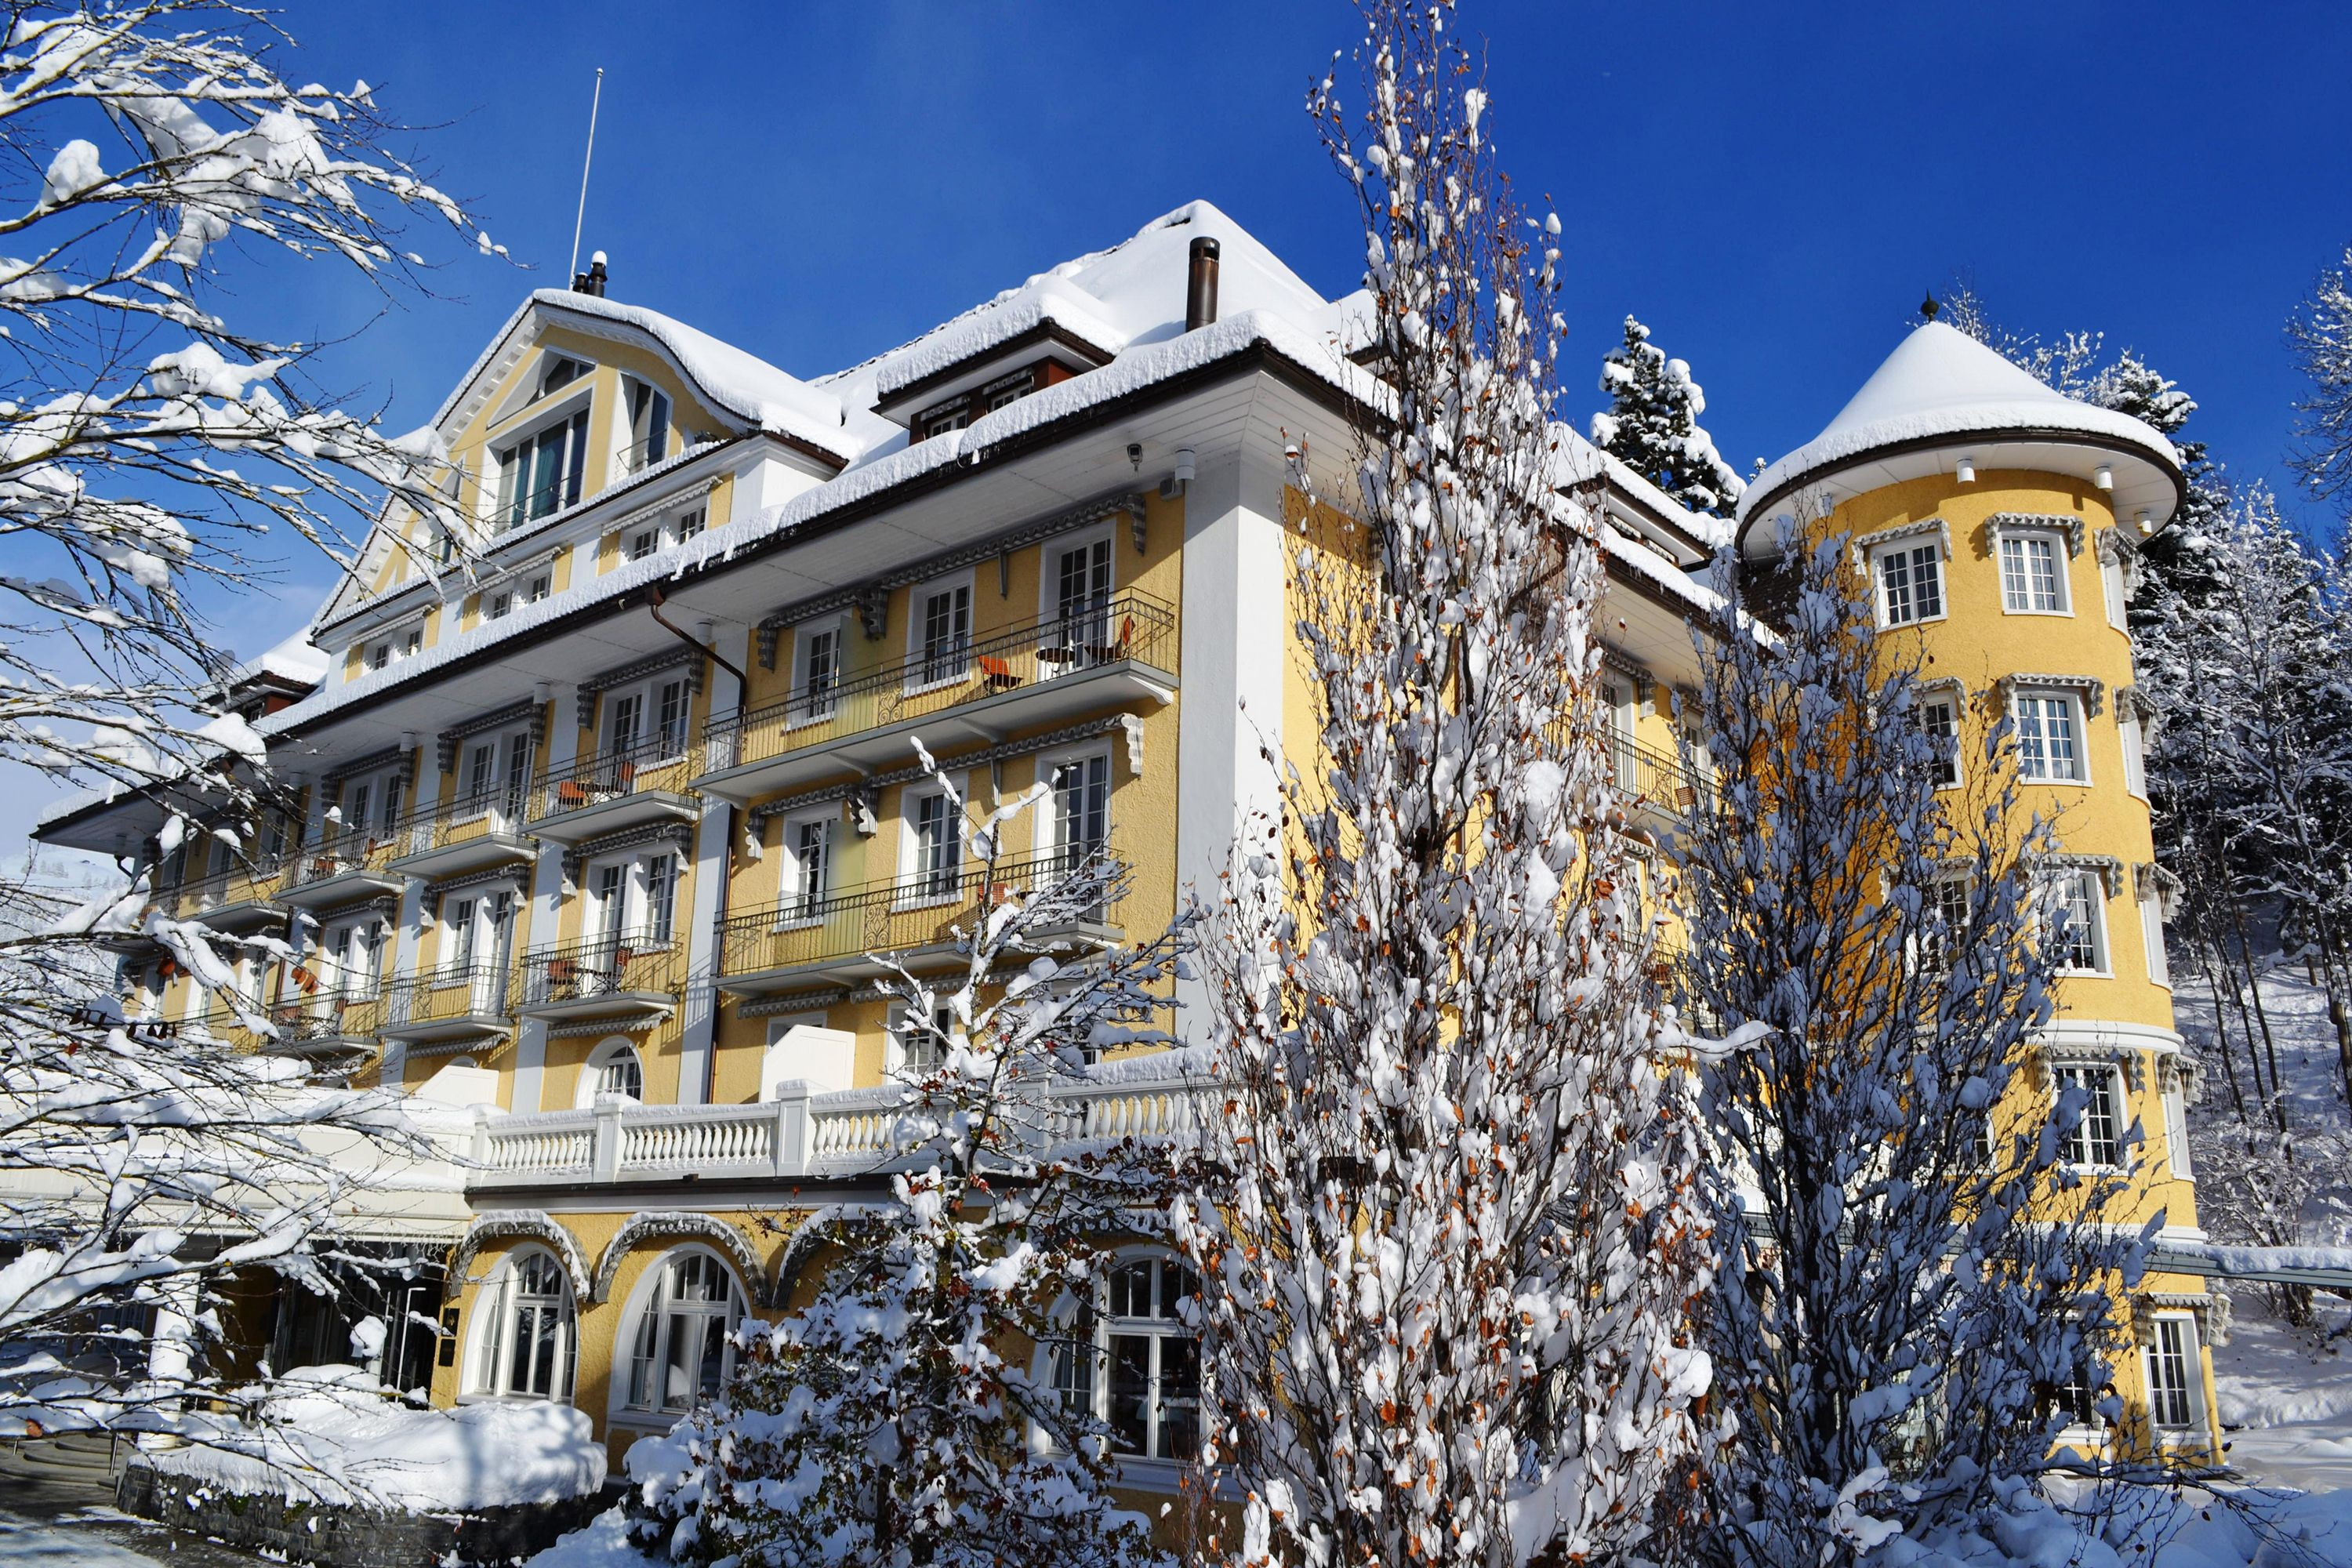 The Swiss ski resort of Gstaad has had its fair share of starry guests, having been the retreat of choice for Grace Kelly, Elizabeth Taylor and Richard Burton over the years – partly thanks to the town's excellent restaurants and hotels. One such gem is Le Grand Bellevue, which was extensively revamped following its centenary a few years ago. The grandeur remains, but it is joined by colourful, Scandinavia-inspired design and a superb spa, featuring 11 treatment-rooms, an ice grotto, a hair salon and Bamford products. Guests can also indulge in a Swiss-style afternoon tea. 